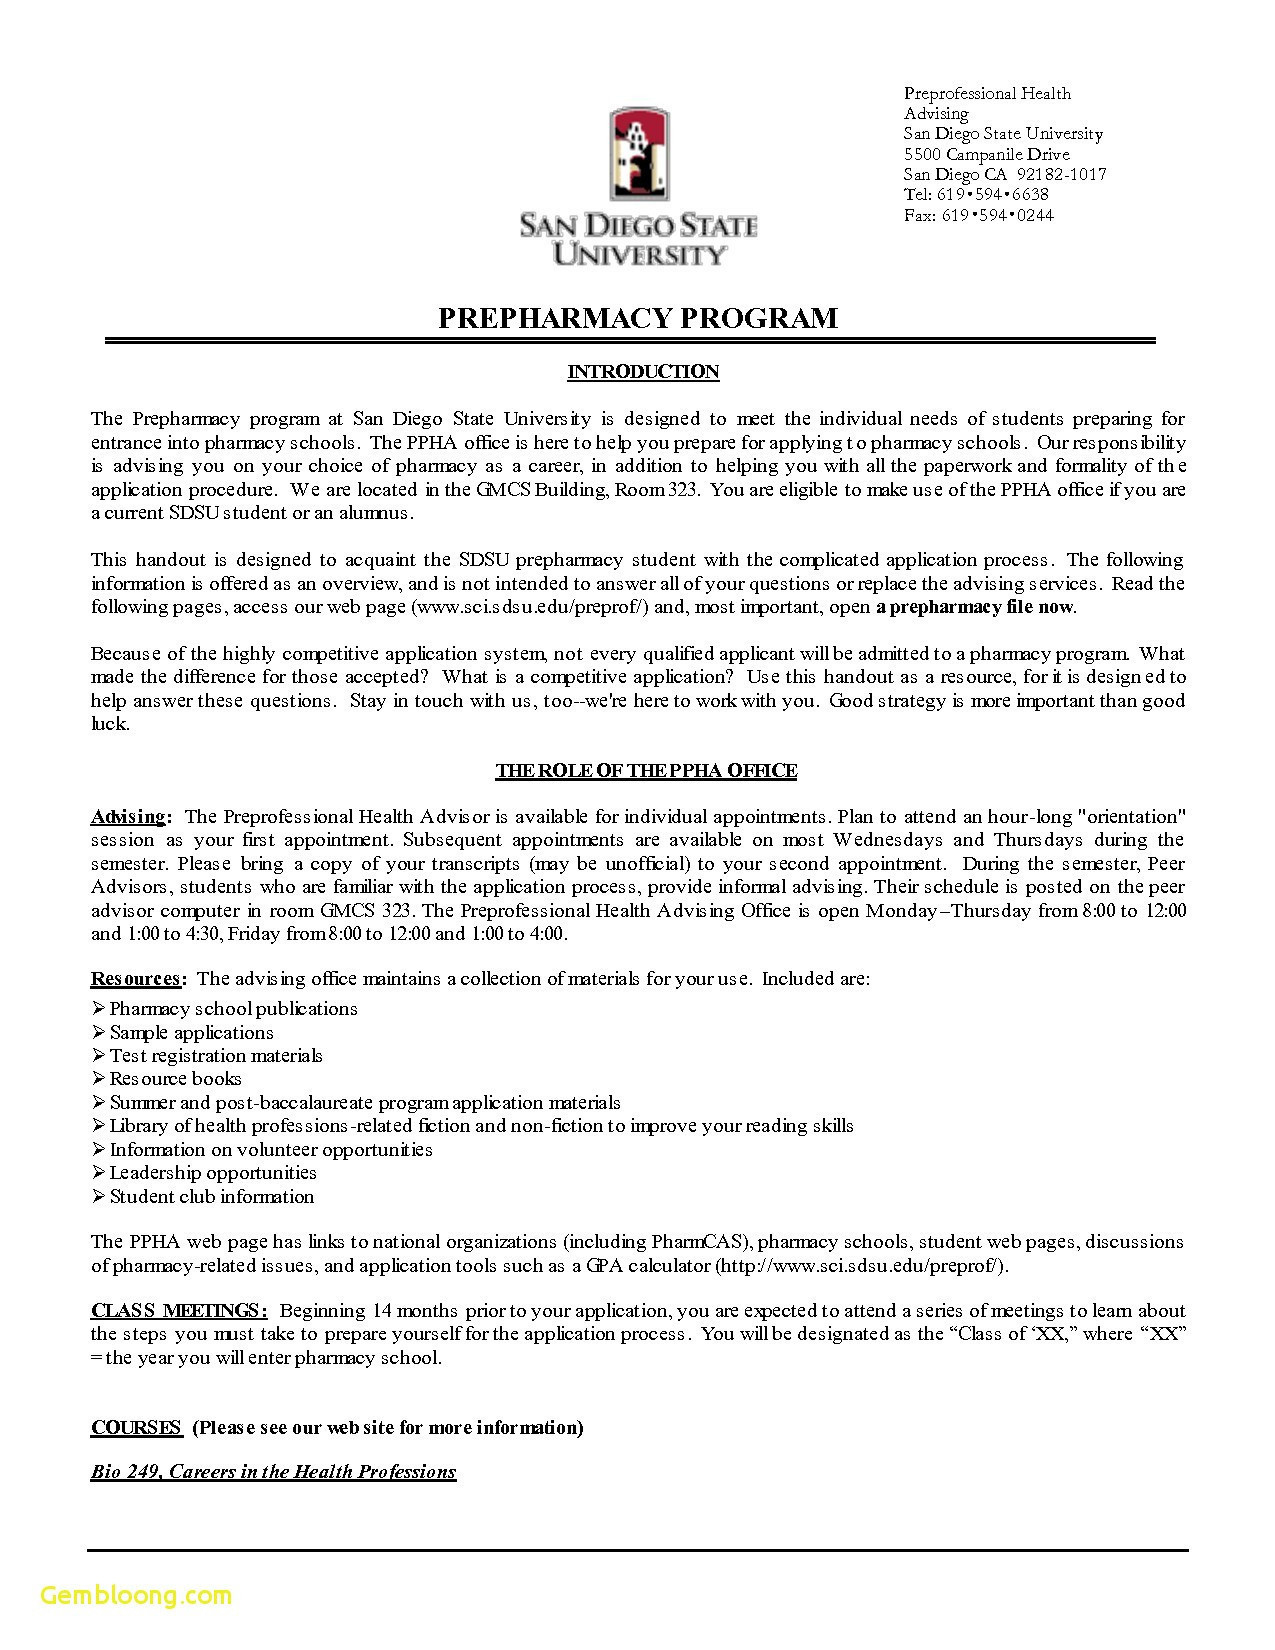 17 pharmacist cover letter template examples